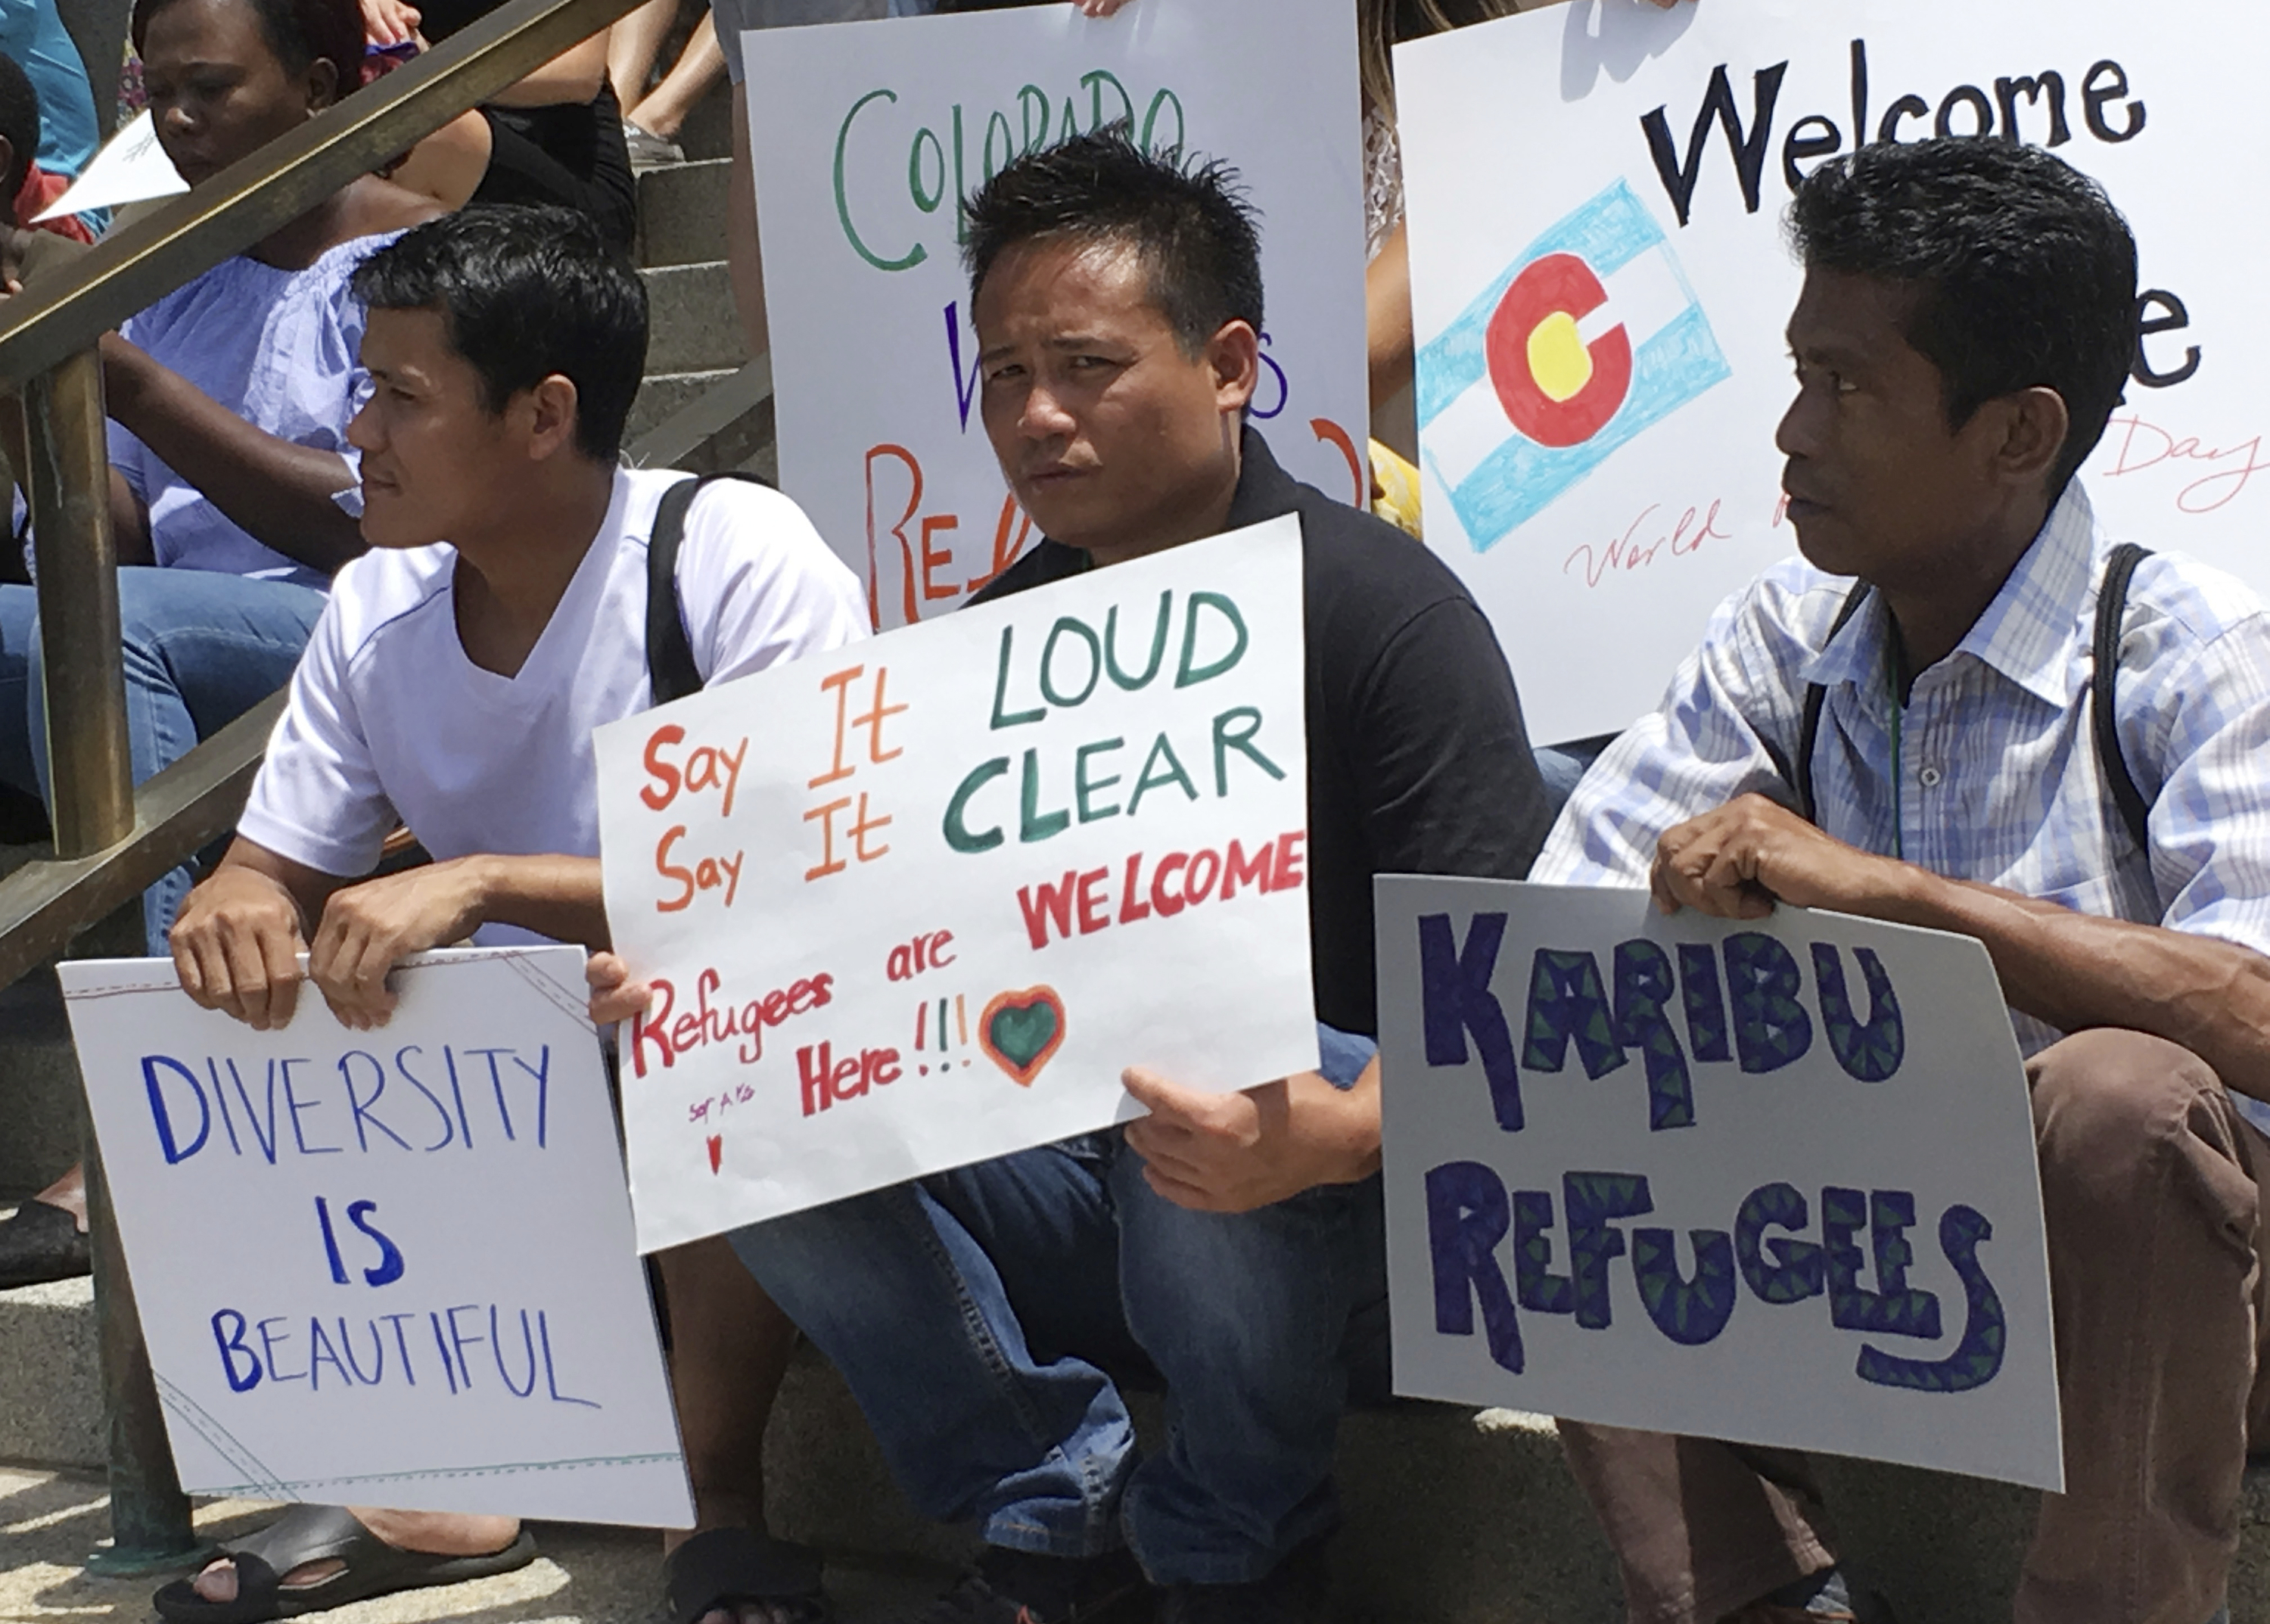 Colorado refugees hold signs during a World Refugee Day rally at the state Capitol in Denver on Tuesday, June 20, 2017.